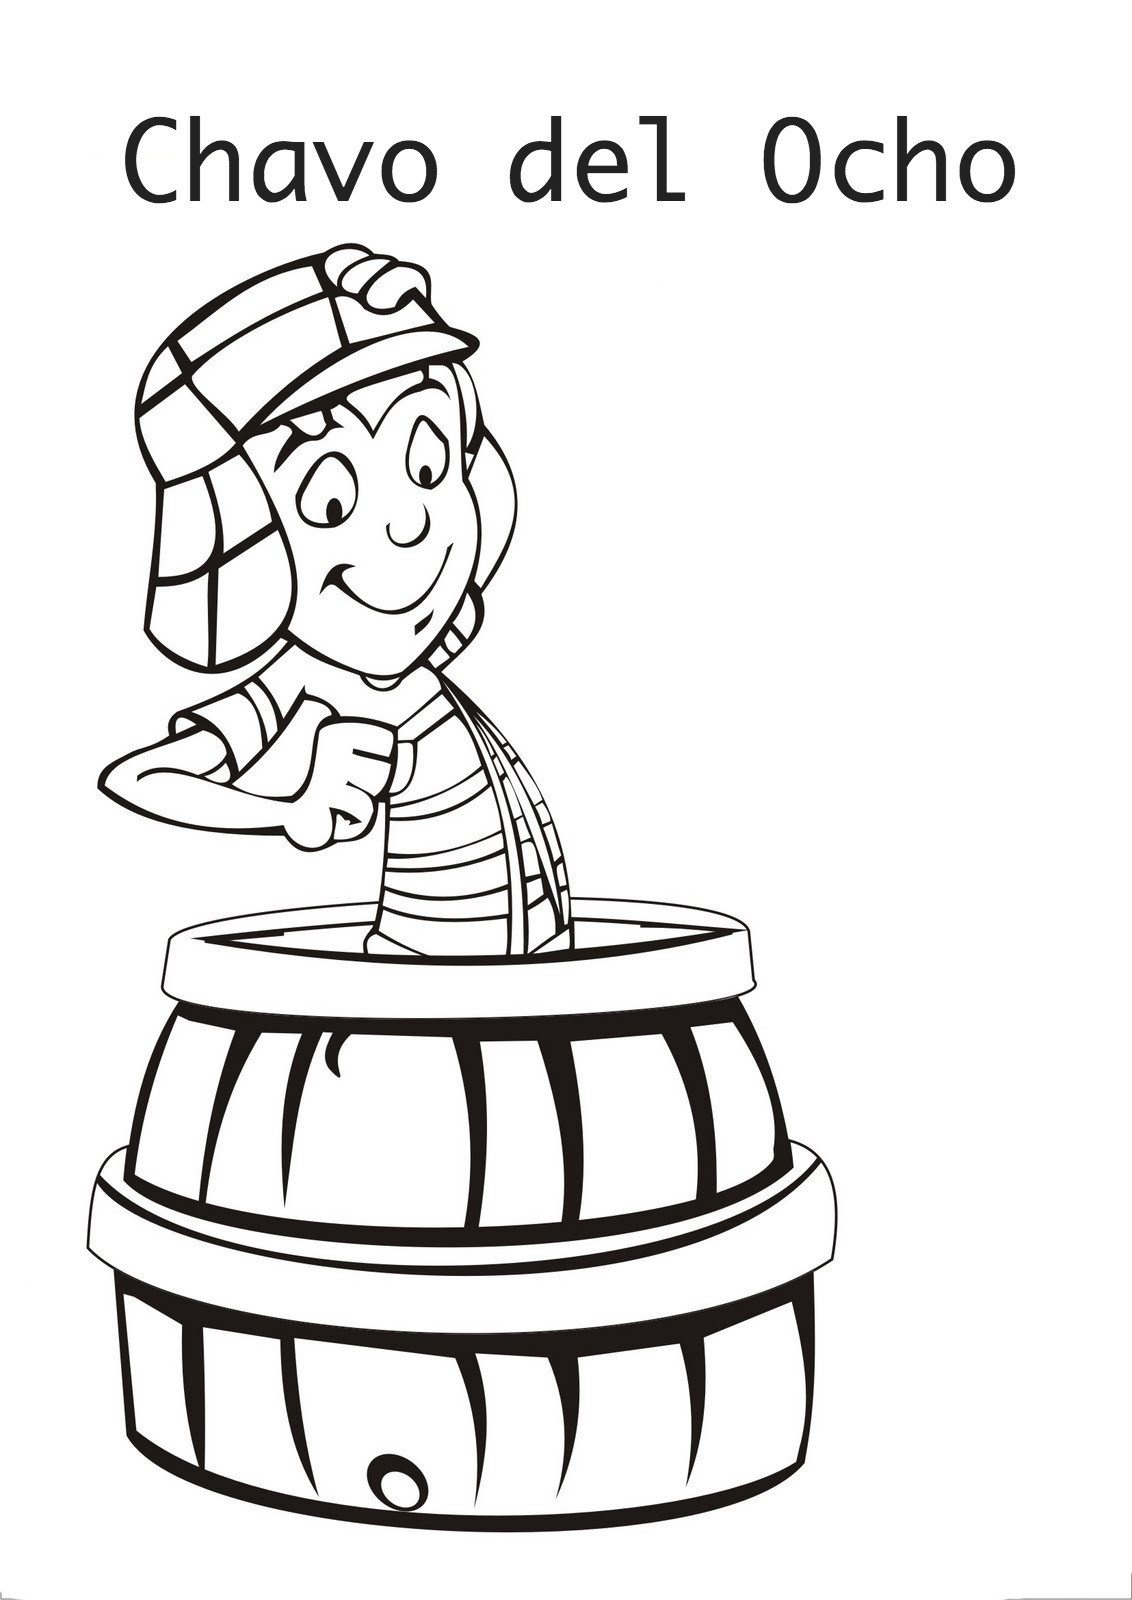 Chavo del ocho coloring pages  Coloring pages chavo  Coloring Pages